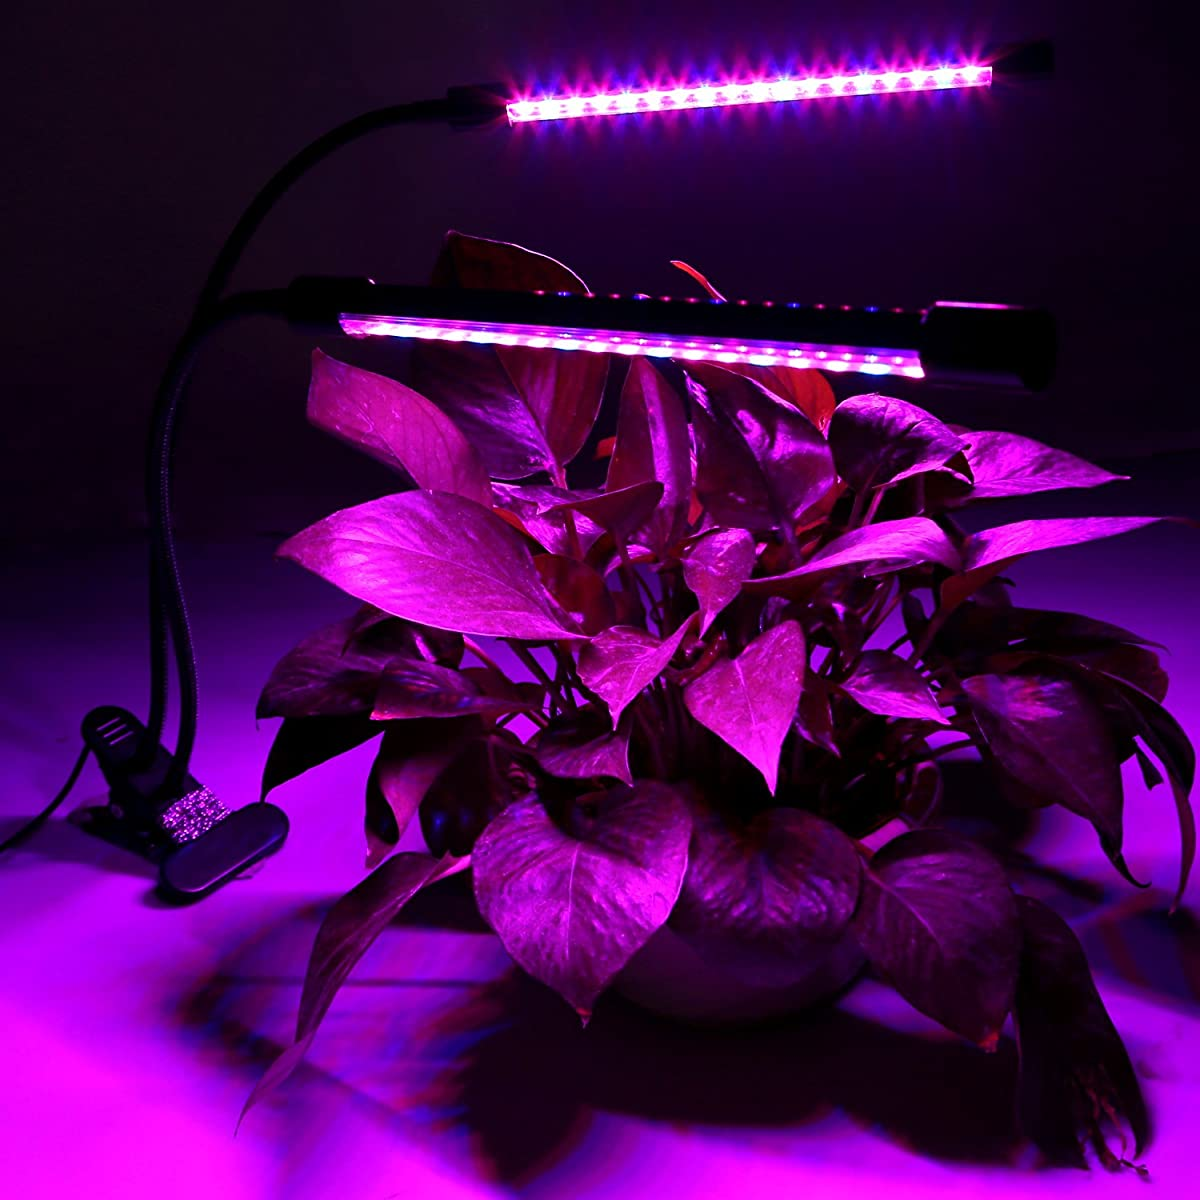 Newforshop Upgraded Dual-lamp LED Grow Light 18W Dimmable 2 Levels Plant Grow Lamp Lights Bulbs with Adjustable Flexible 360 Degree Gooseneck for Indoor Plants Hydroponics Greenhouse Garden Office